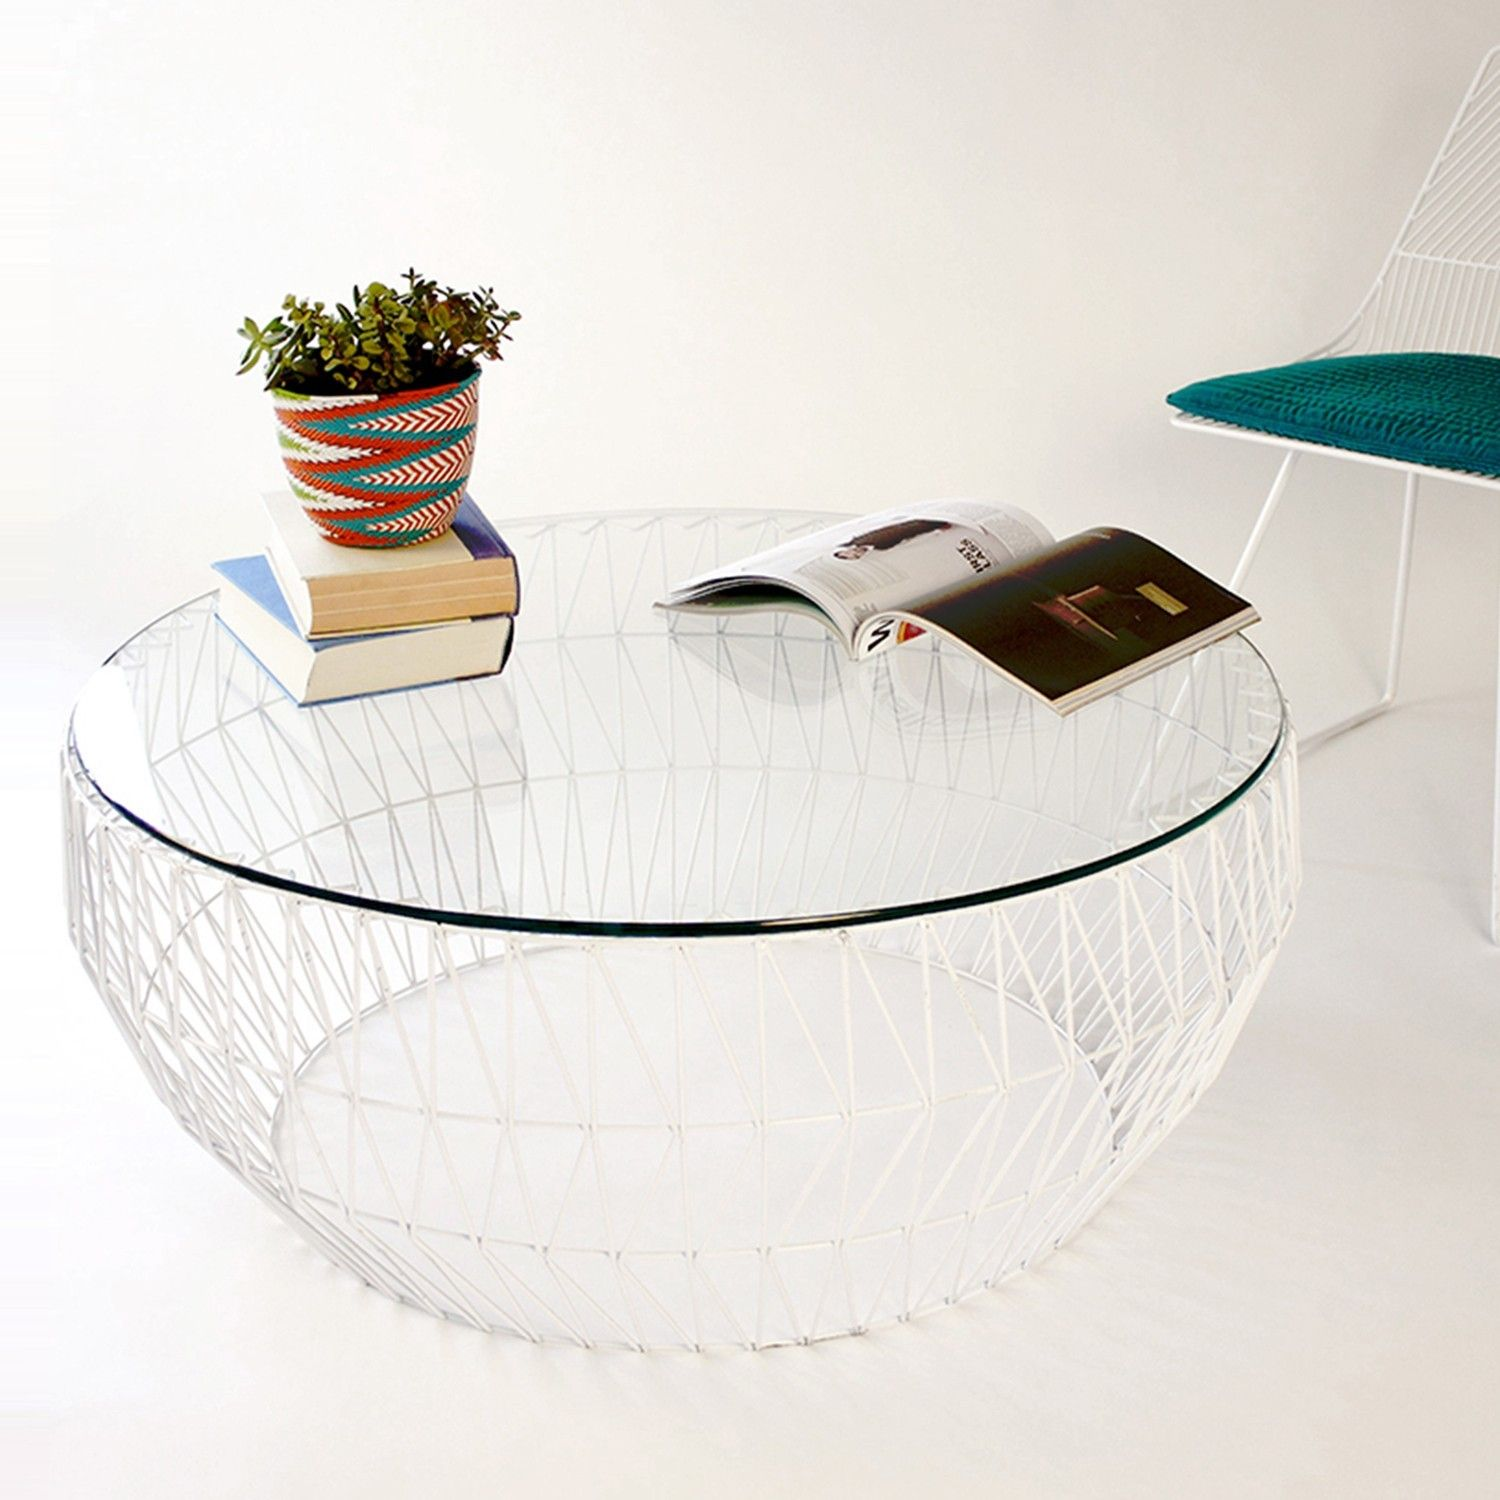 The Bend Goods Glass Coffee Table is modern with an airy design. http://www.yliving.com/blog/outdoor-furniture-trend-metal/